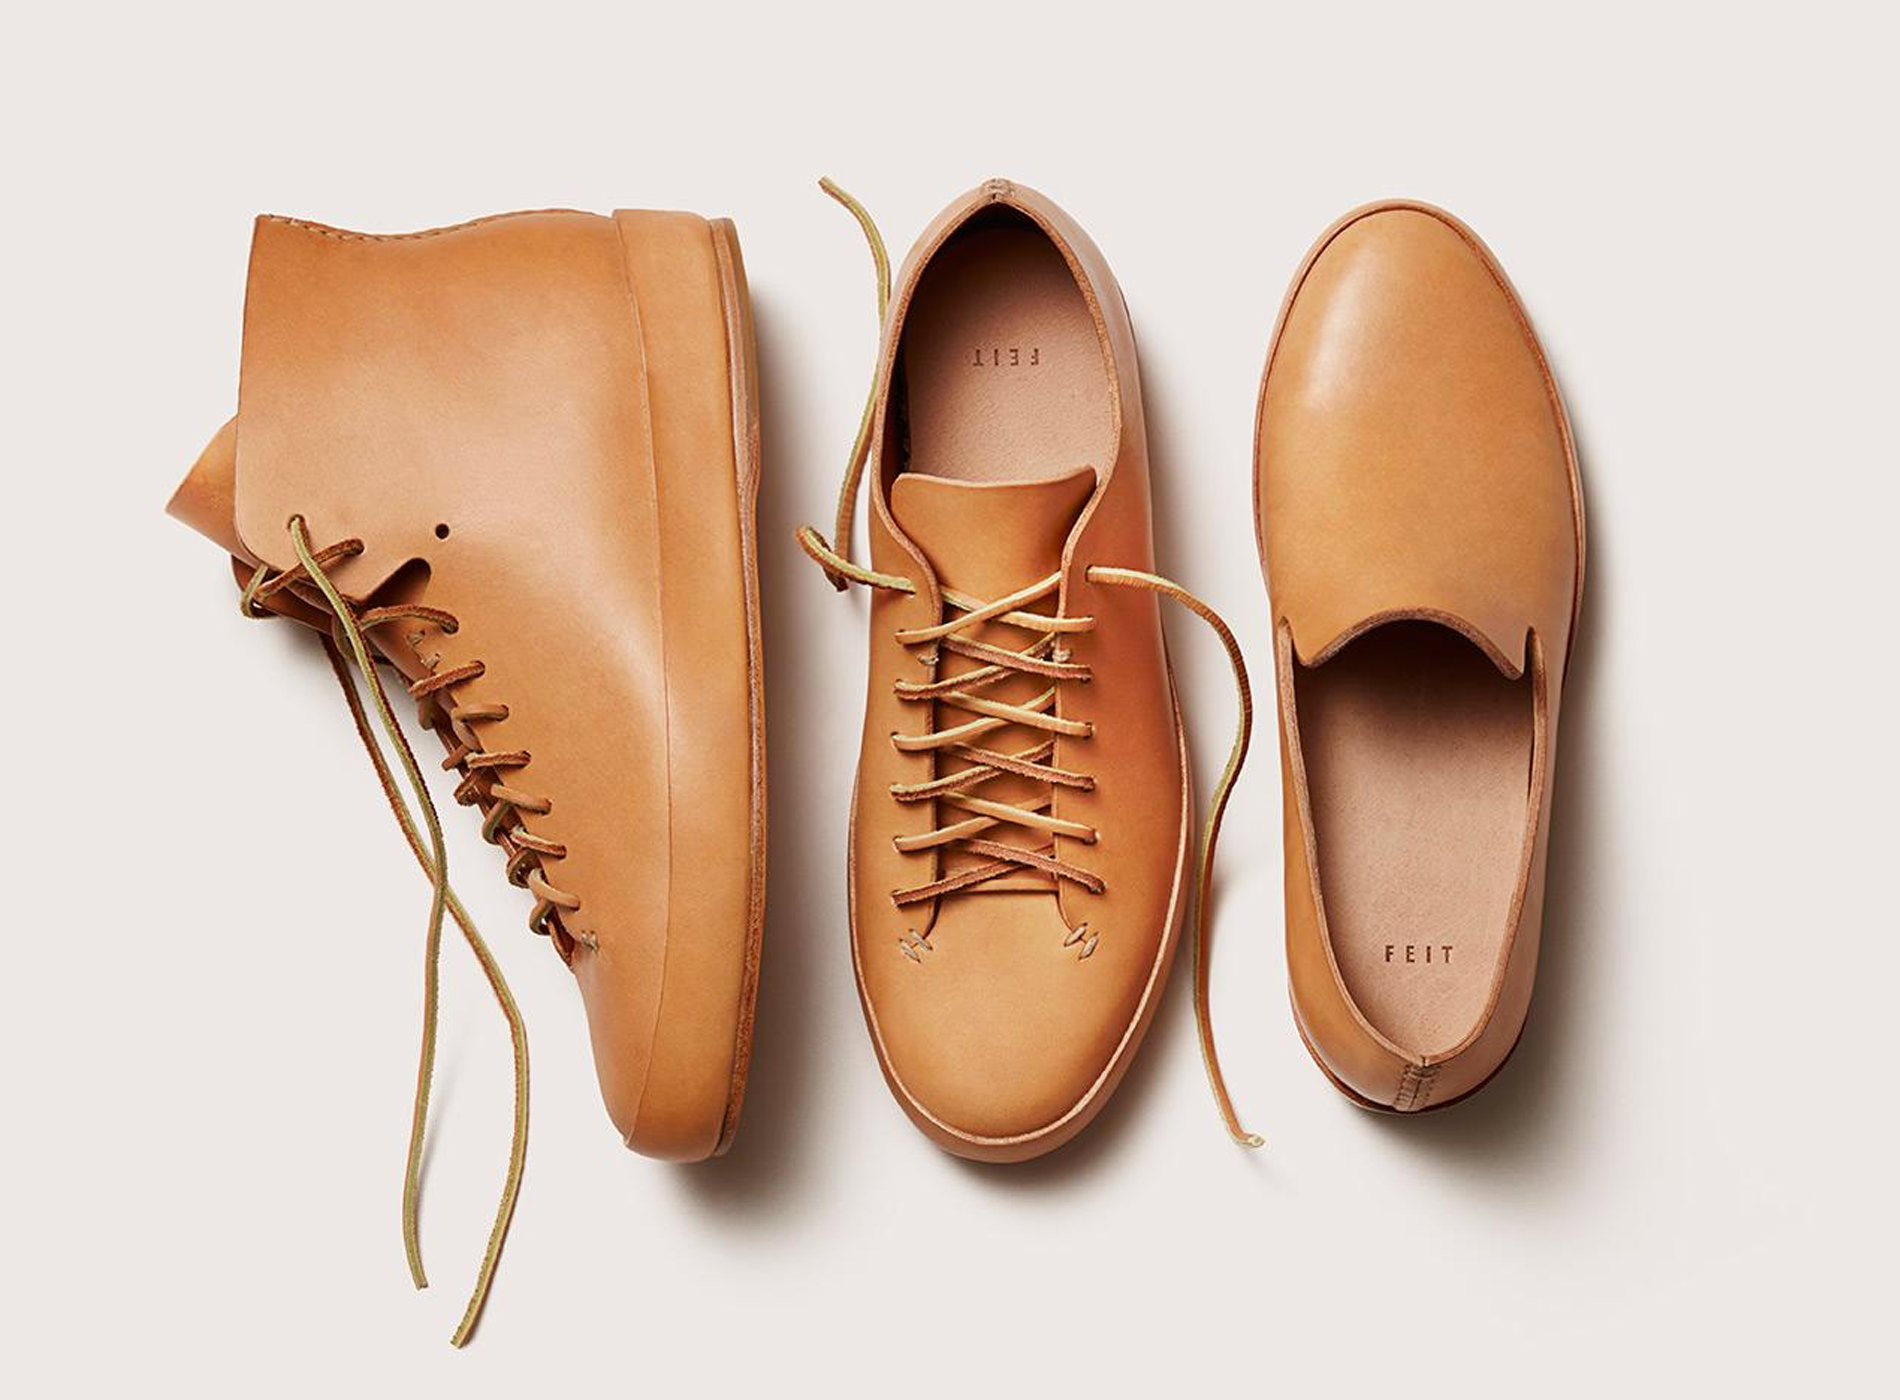 FEIT Luxury Handmade Footwear